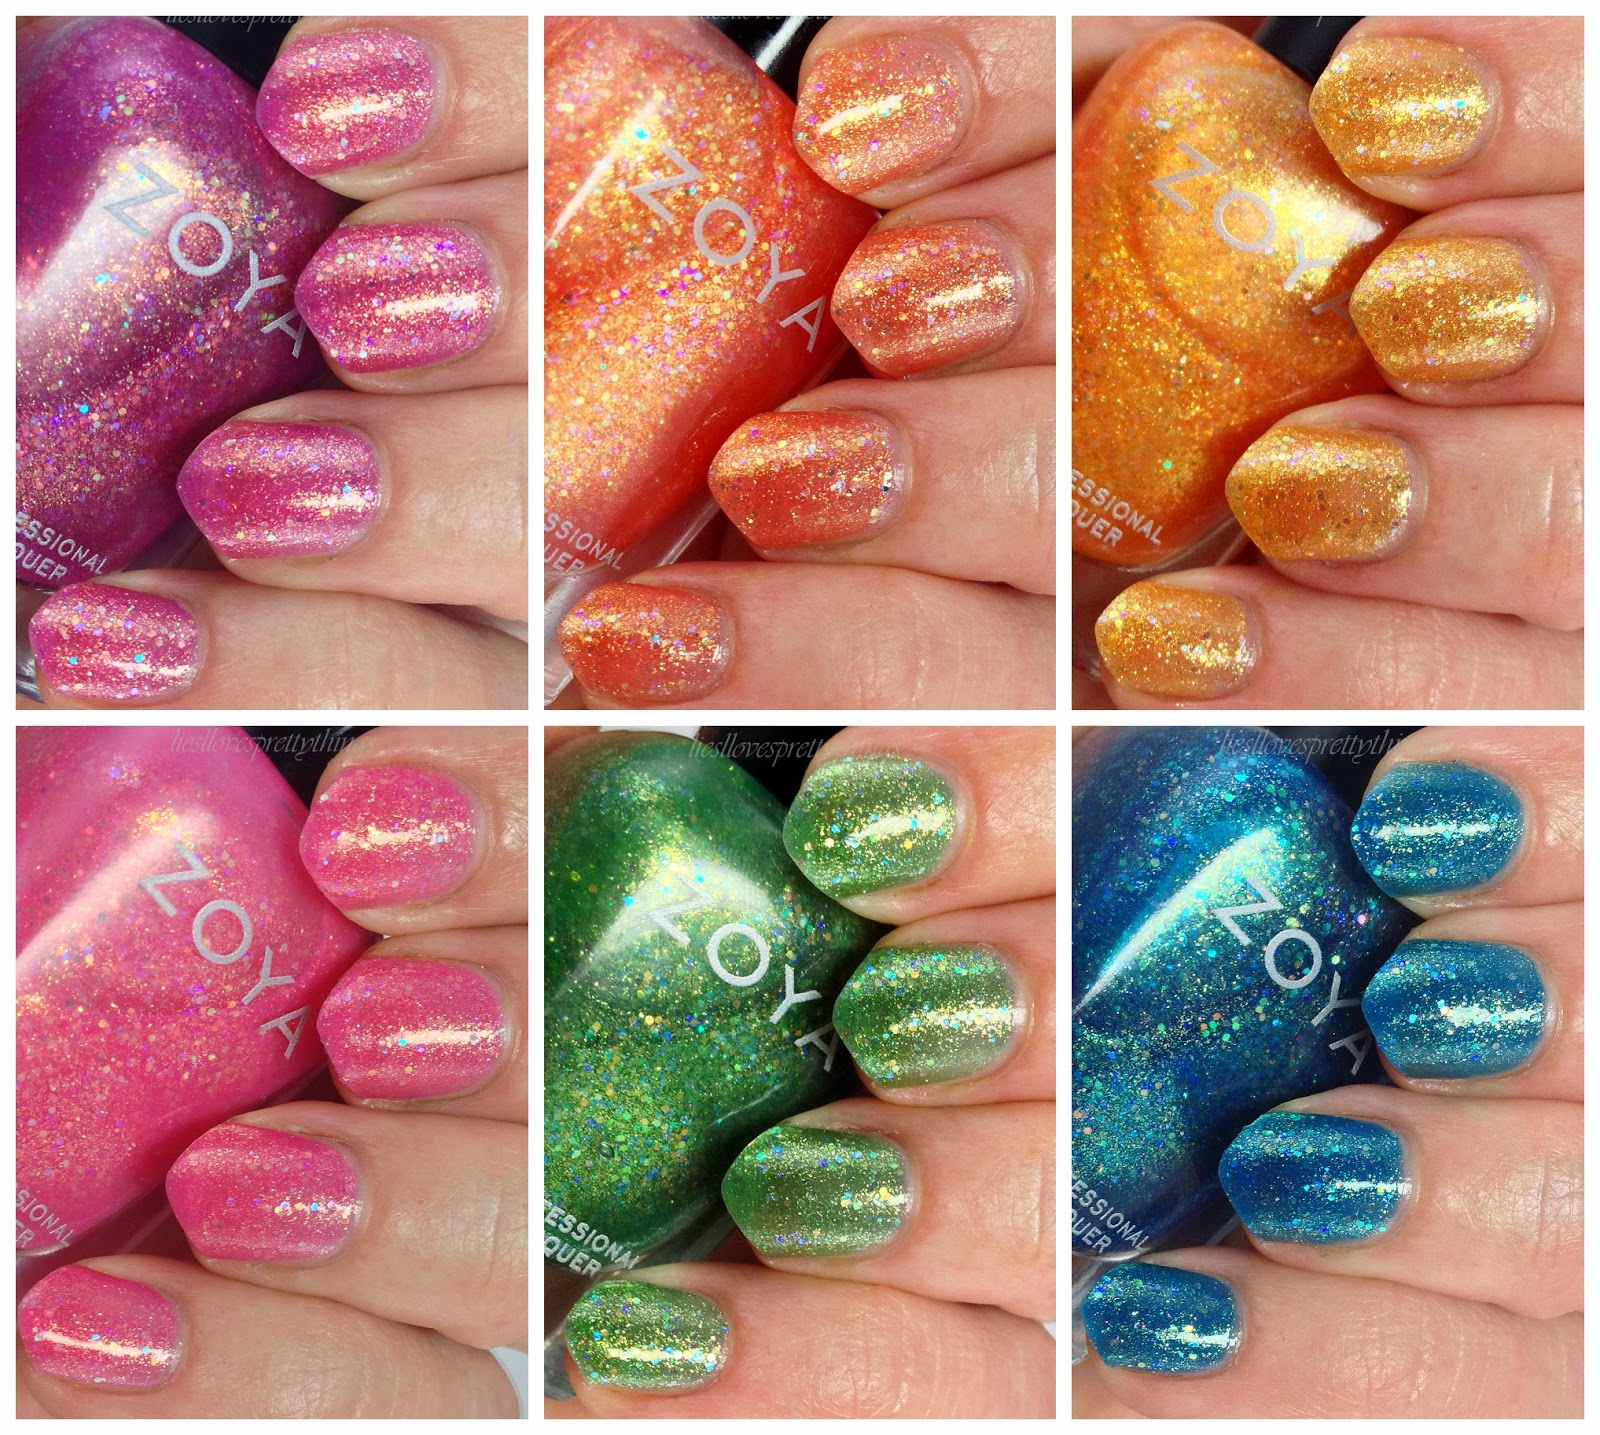 Zoya Bubbly summer 2014 collection swatches and review